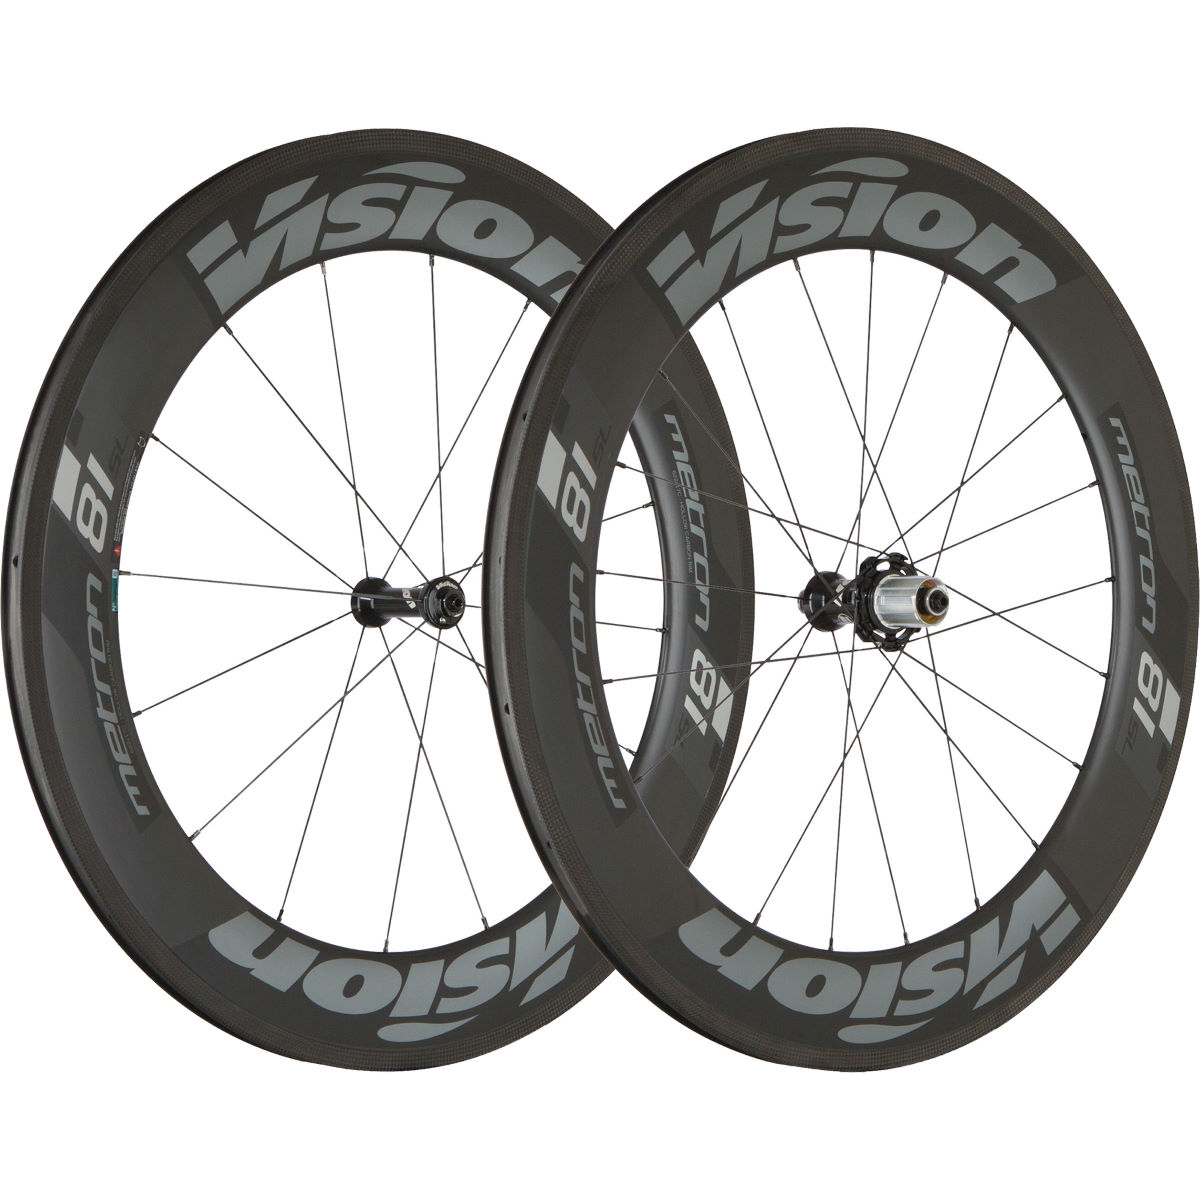 Vision Metron 81 SL Carbon Clincher Wheelset Performance Wheels